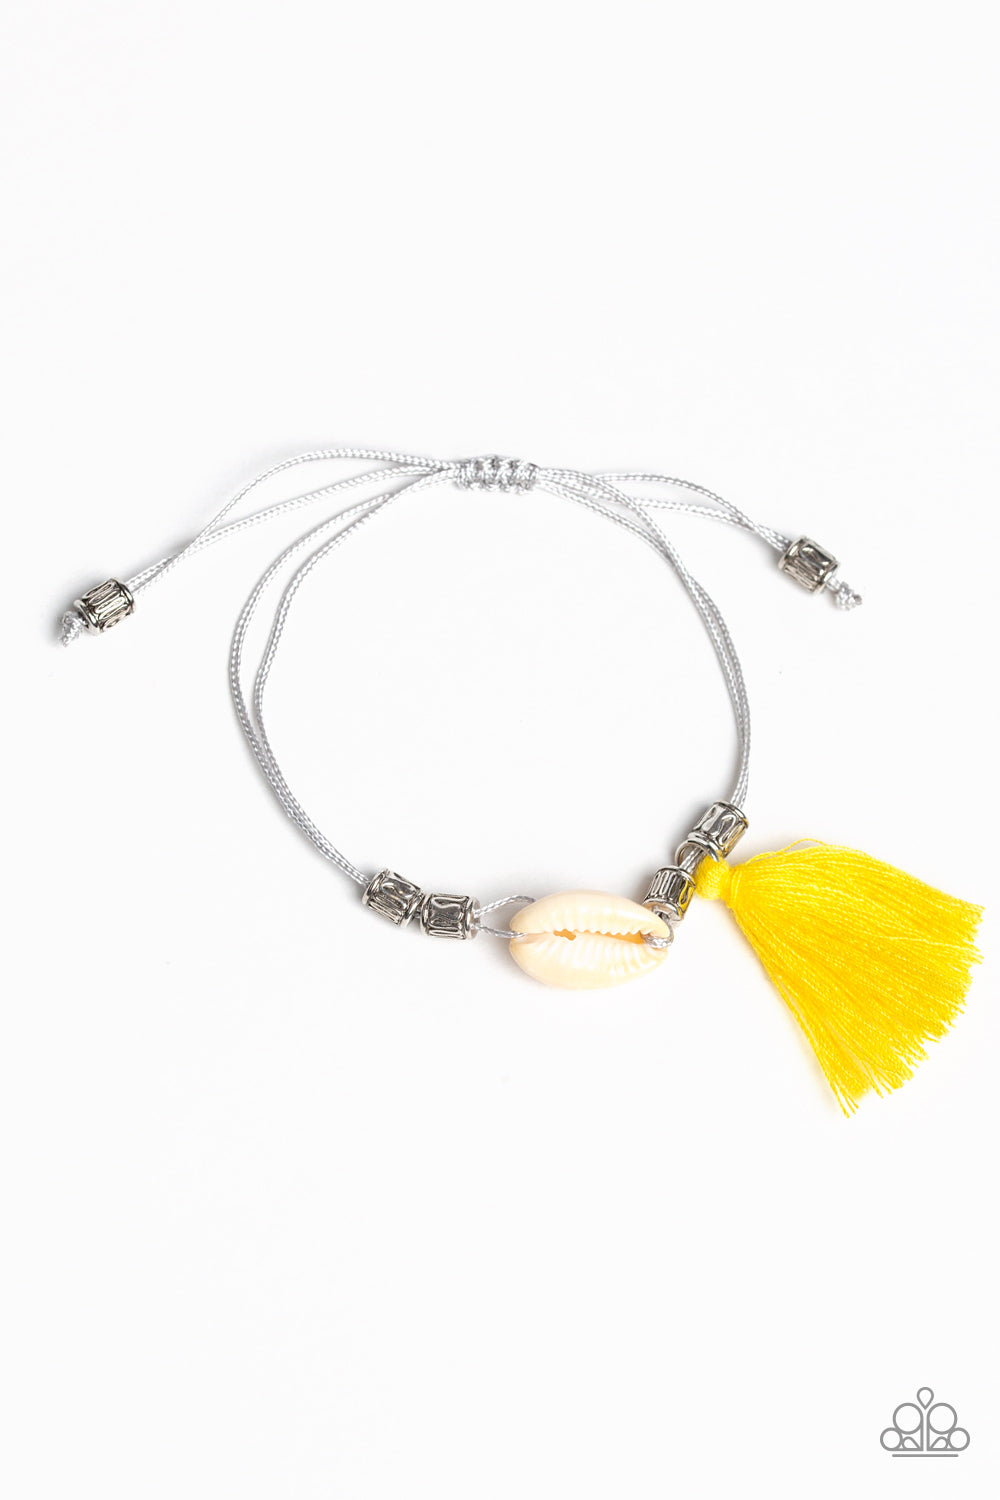 Paparazzi Accessories - SEA If I Care - Yellow Bracelet - JMJ Jewelry Collection